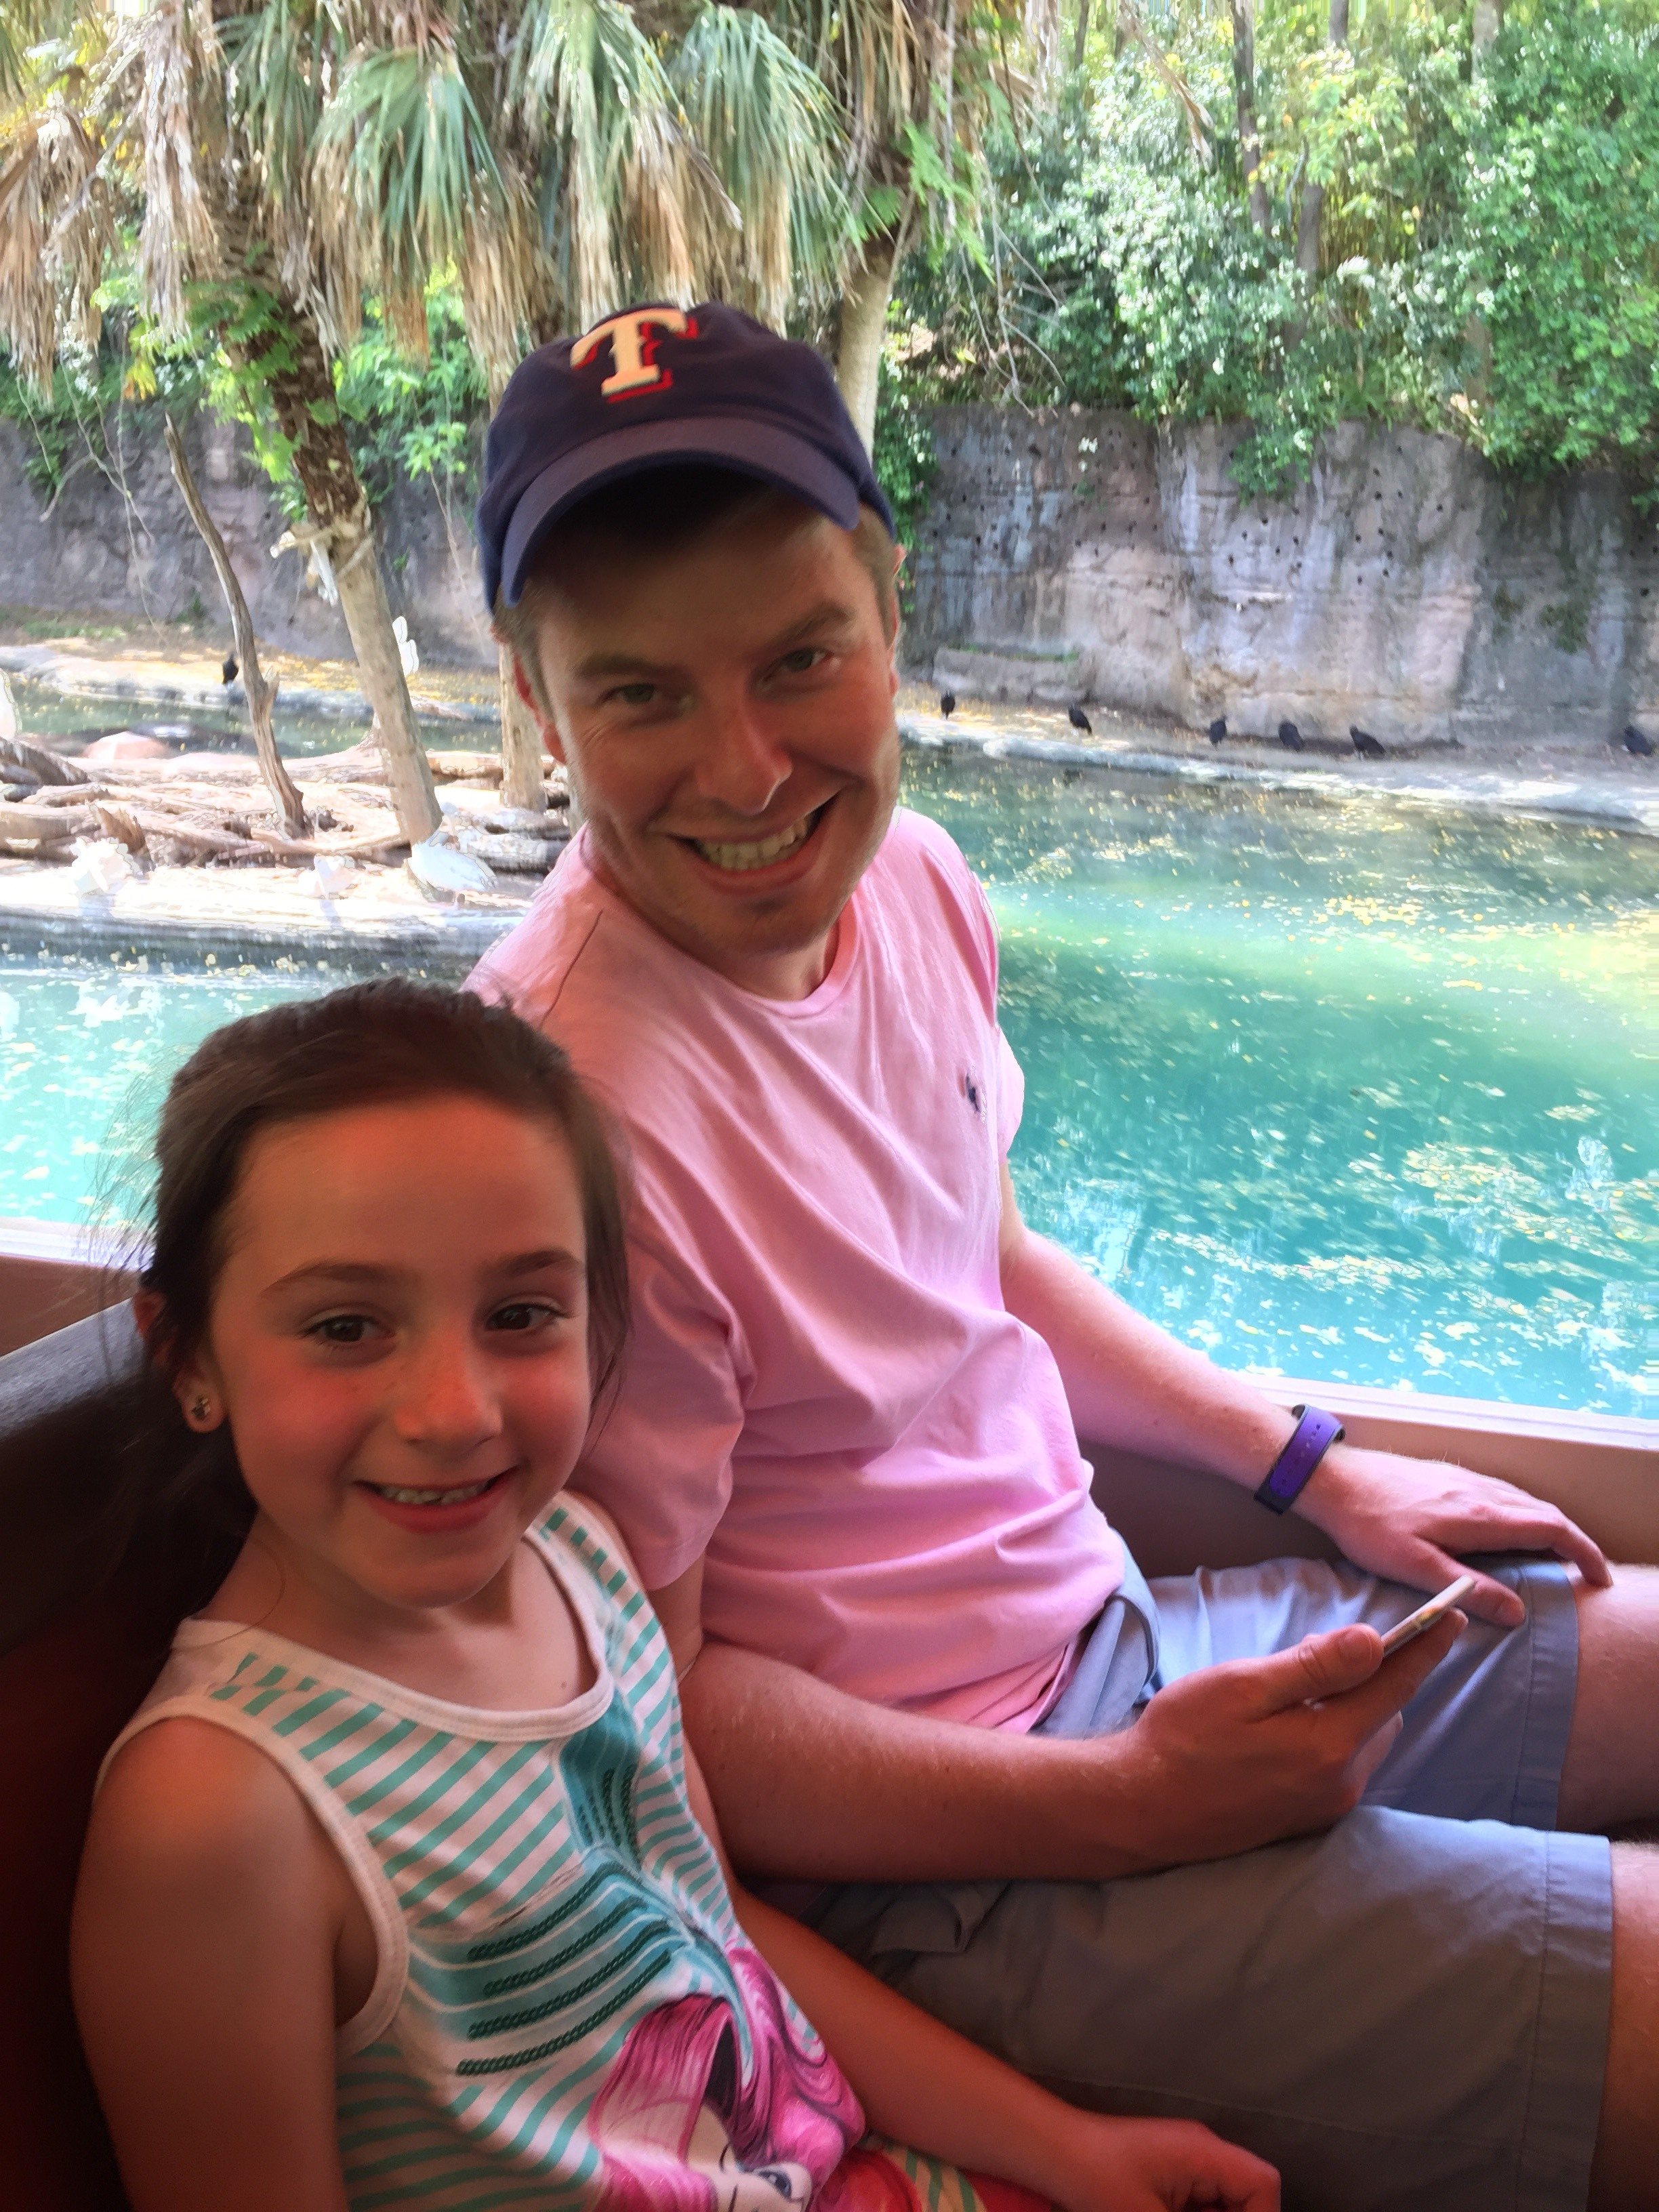 The Roo (My daughter) & her Uncle enjoying the Safari!